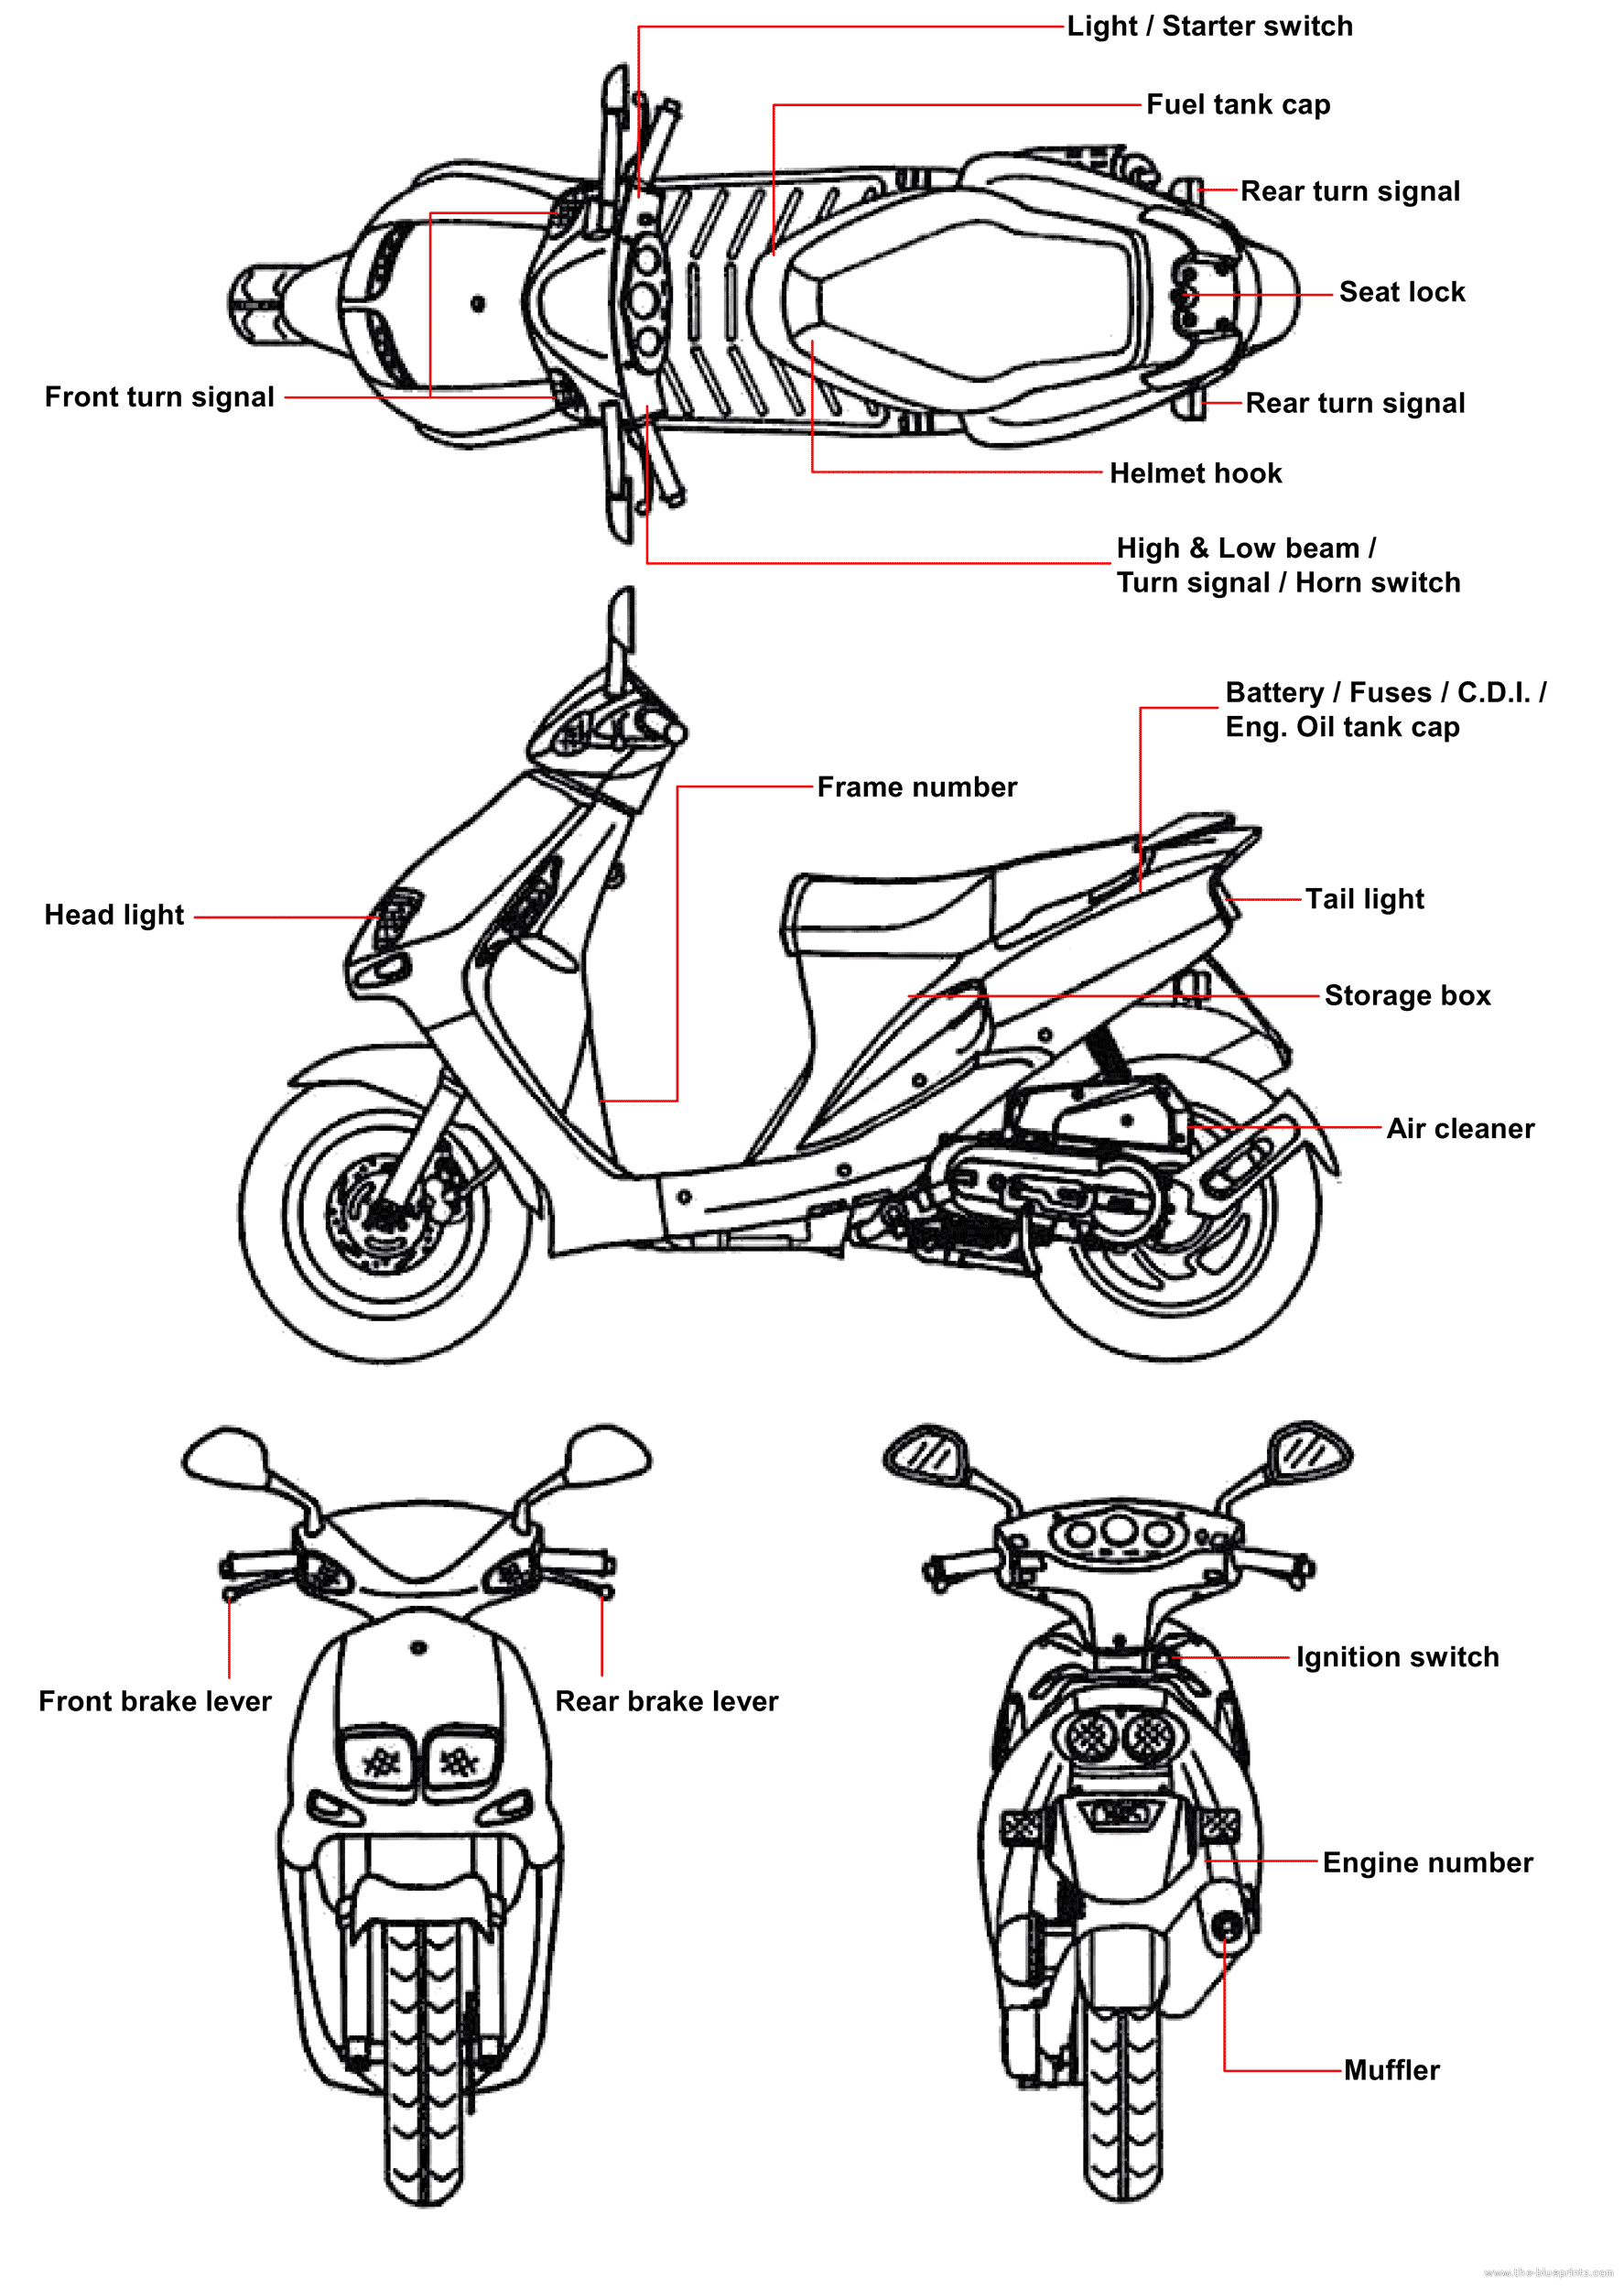 Vip Scooter 49cc Manual One Word Quickstart Guide Book Tao 50cc Wiring Diagram Sym Carburetor Elsavadorla Scooters Engine 2014